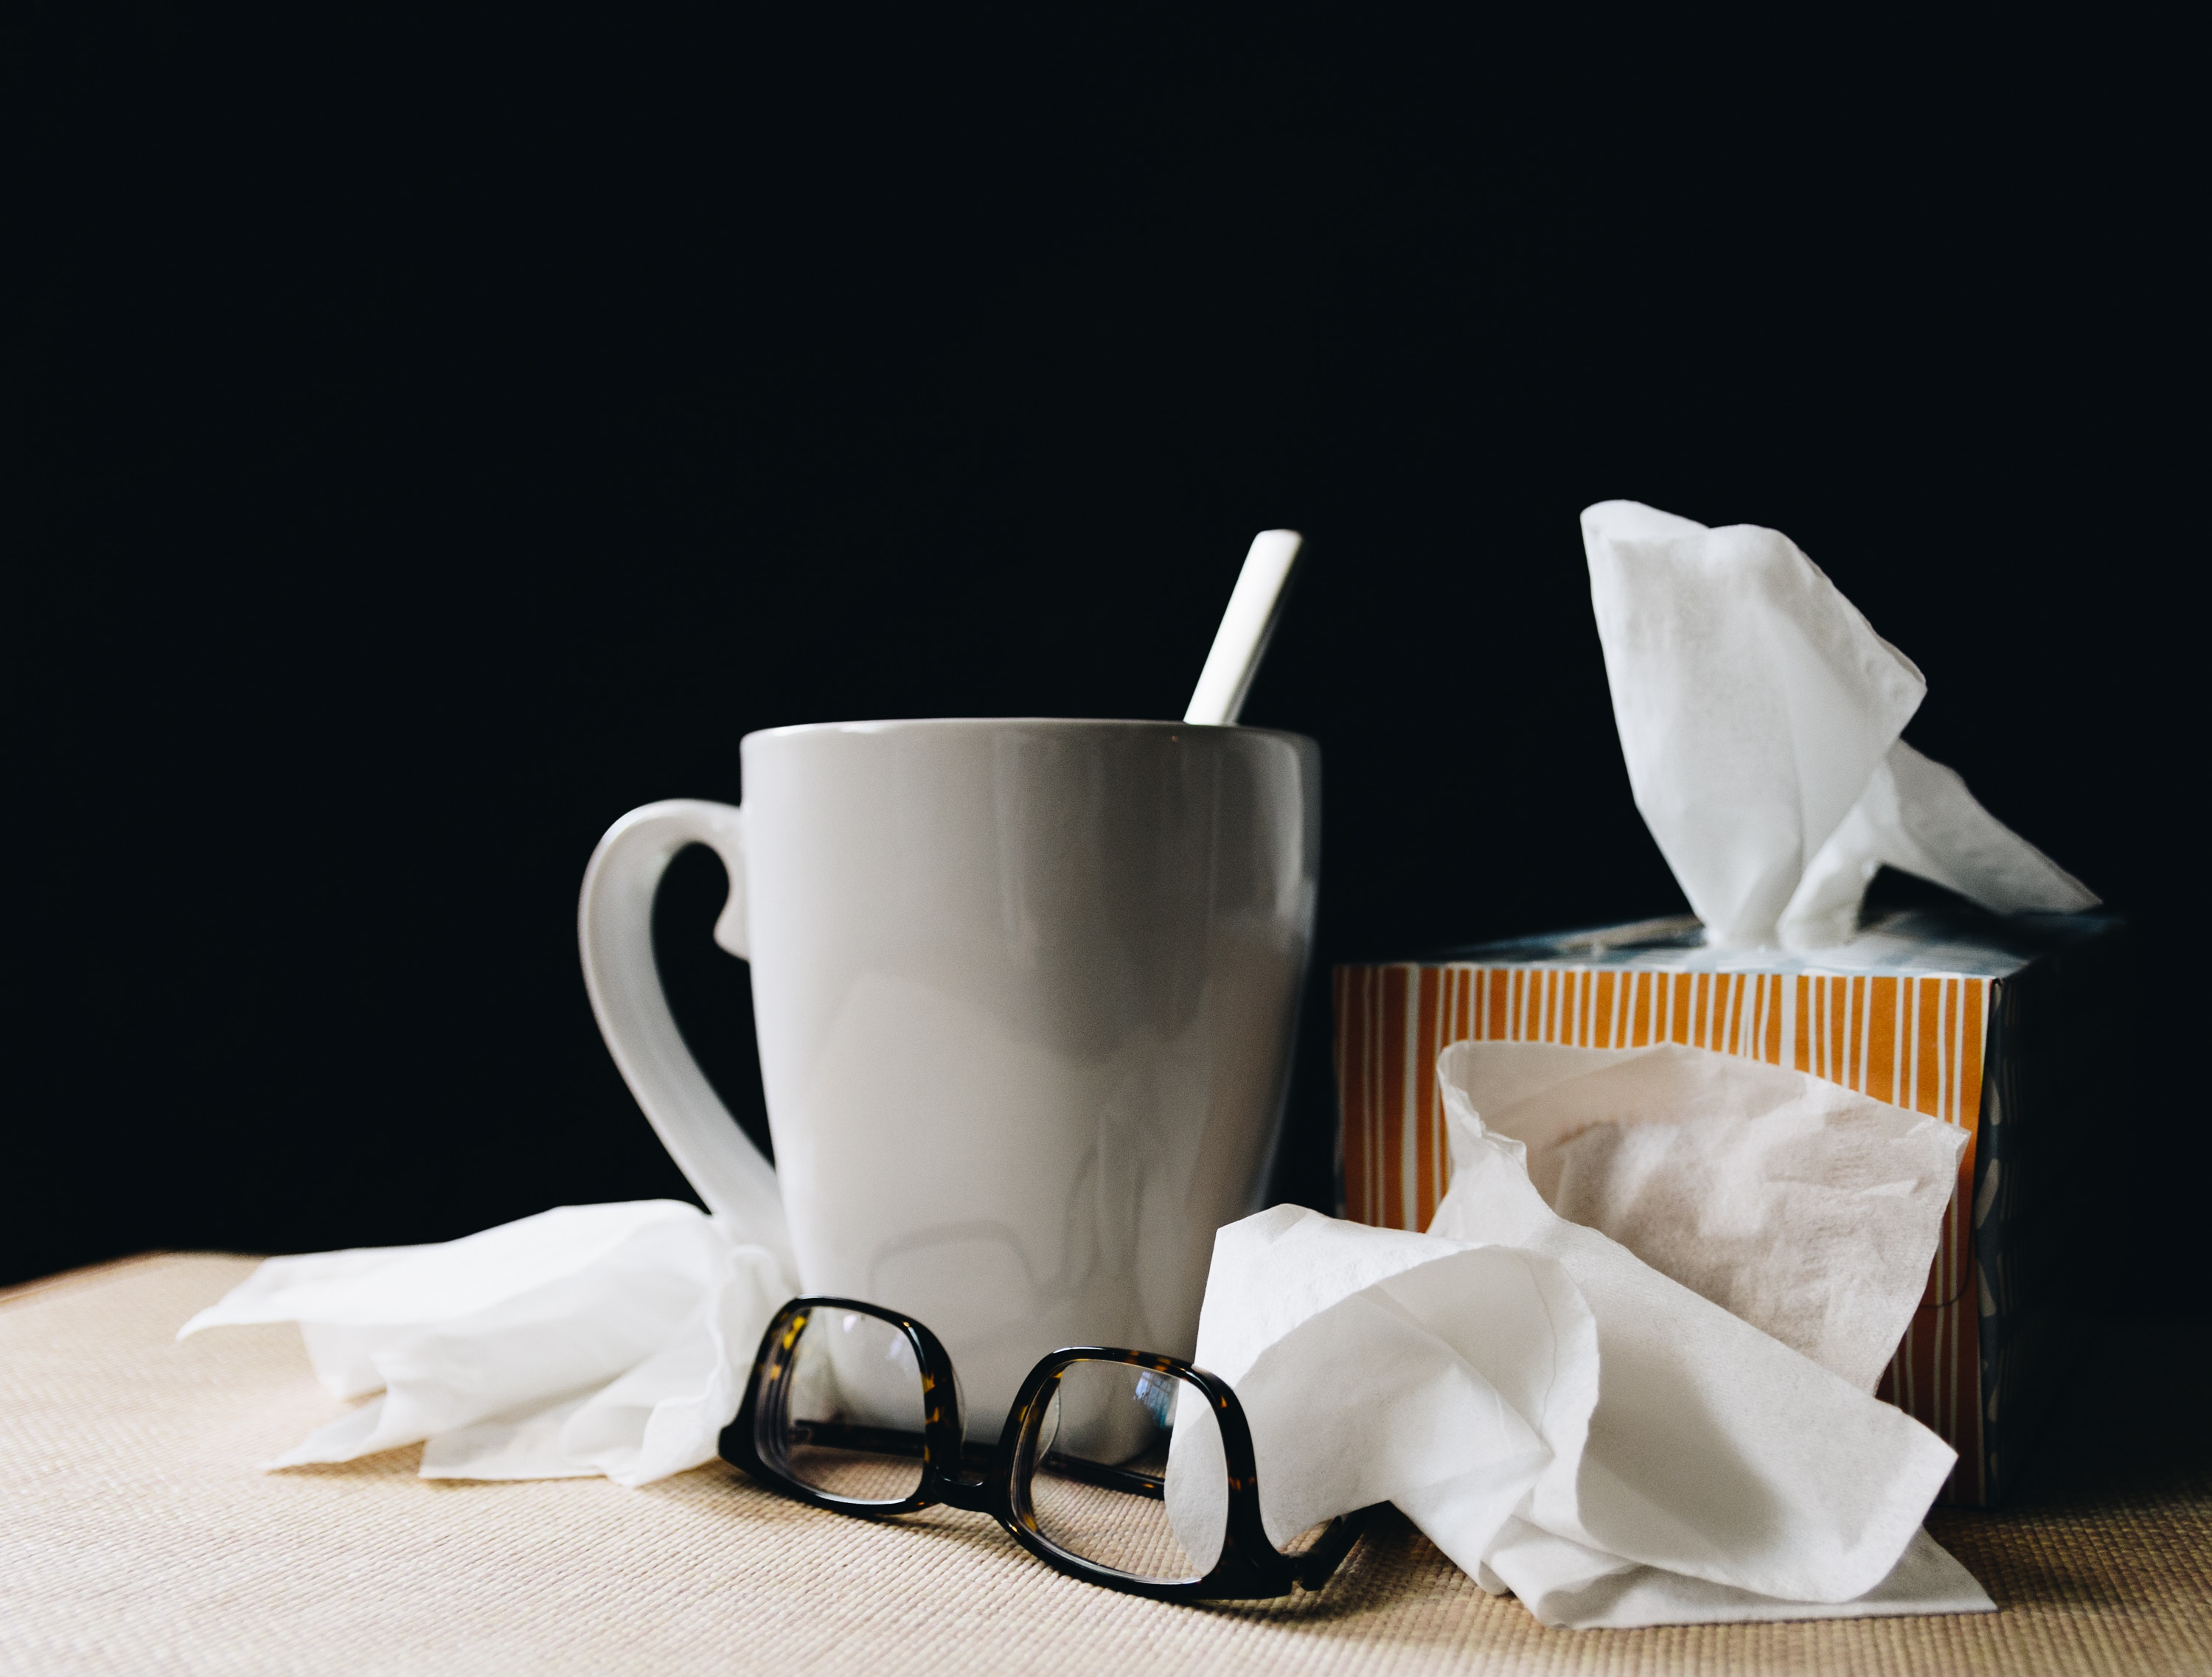 Helpful Tips to Avoid The Flu This Season